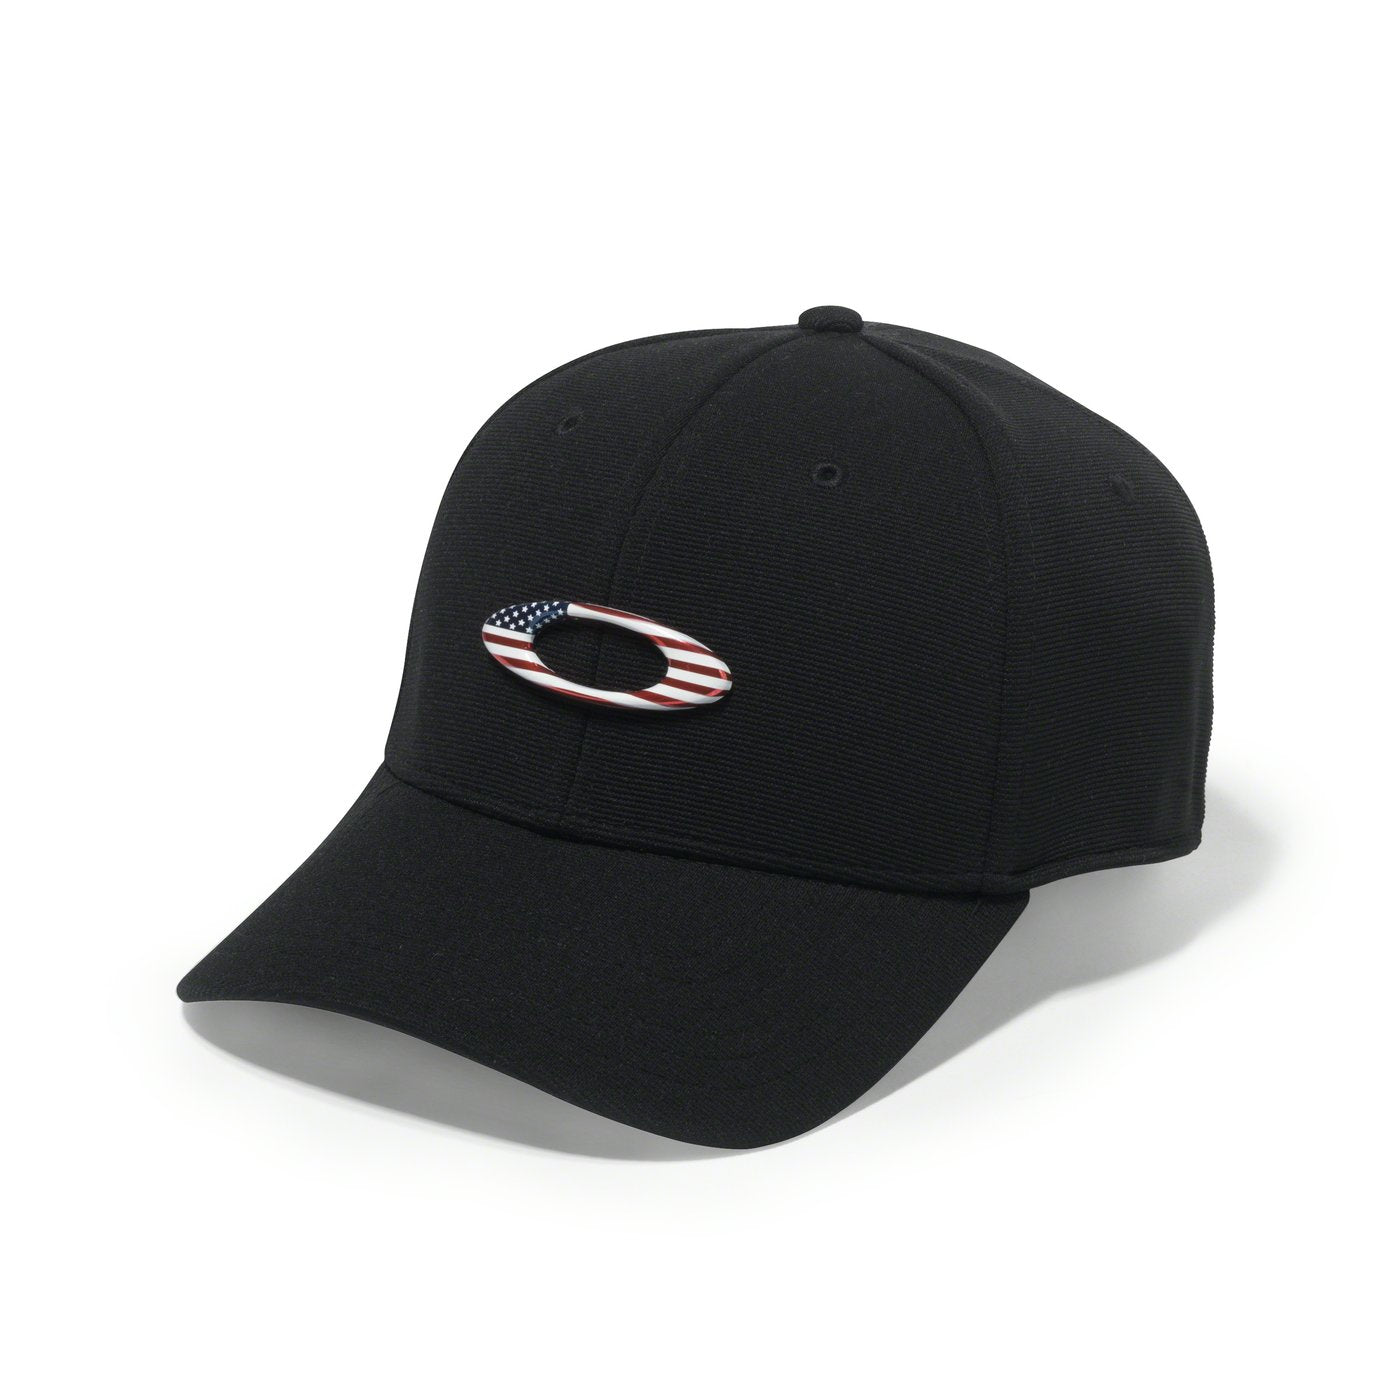 Bone Oakley Tincan hat (Black American Flag) – Go Shopping Miami 89fb56707f0